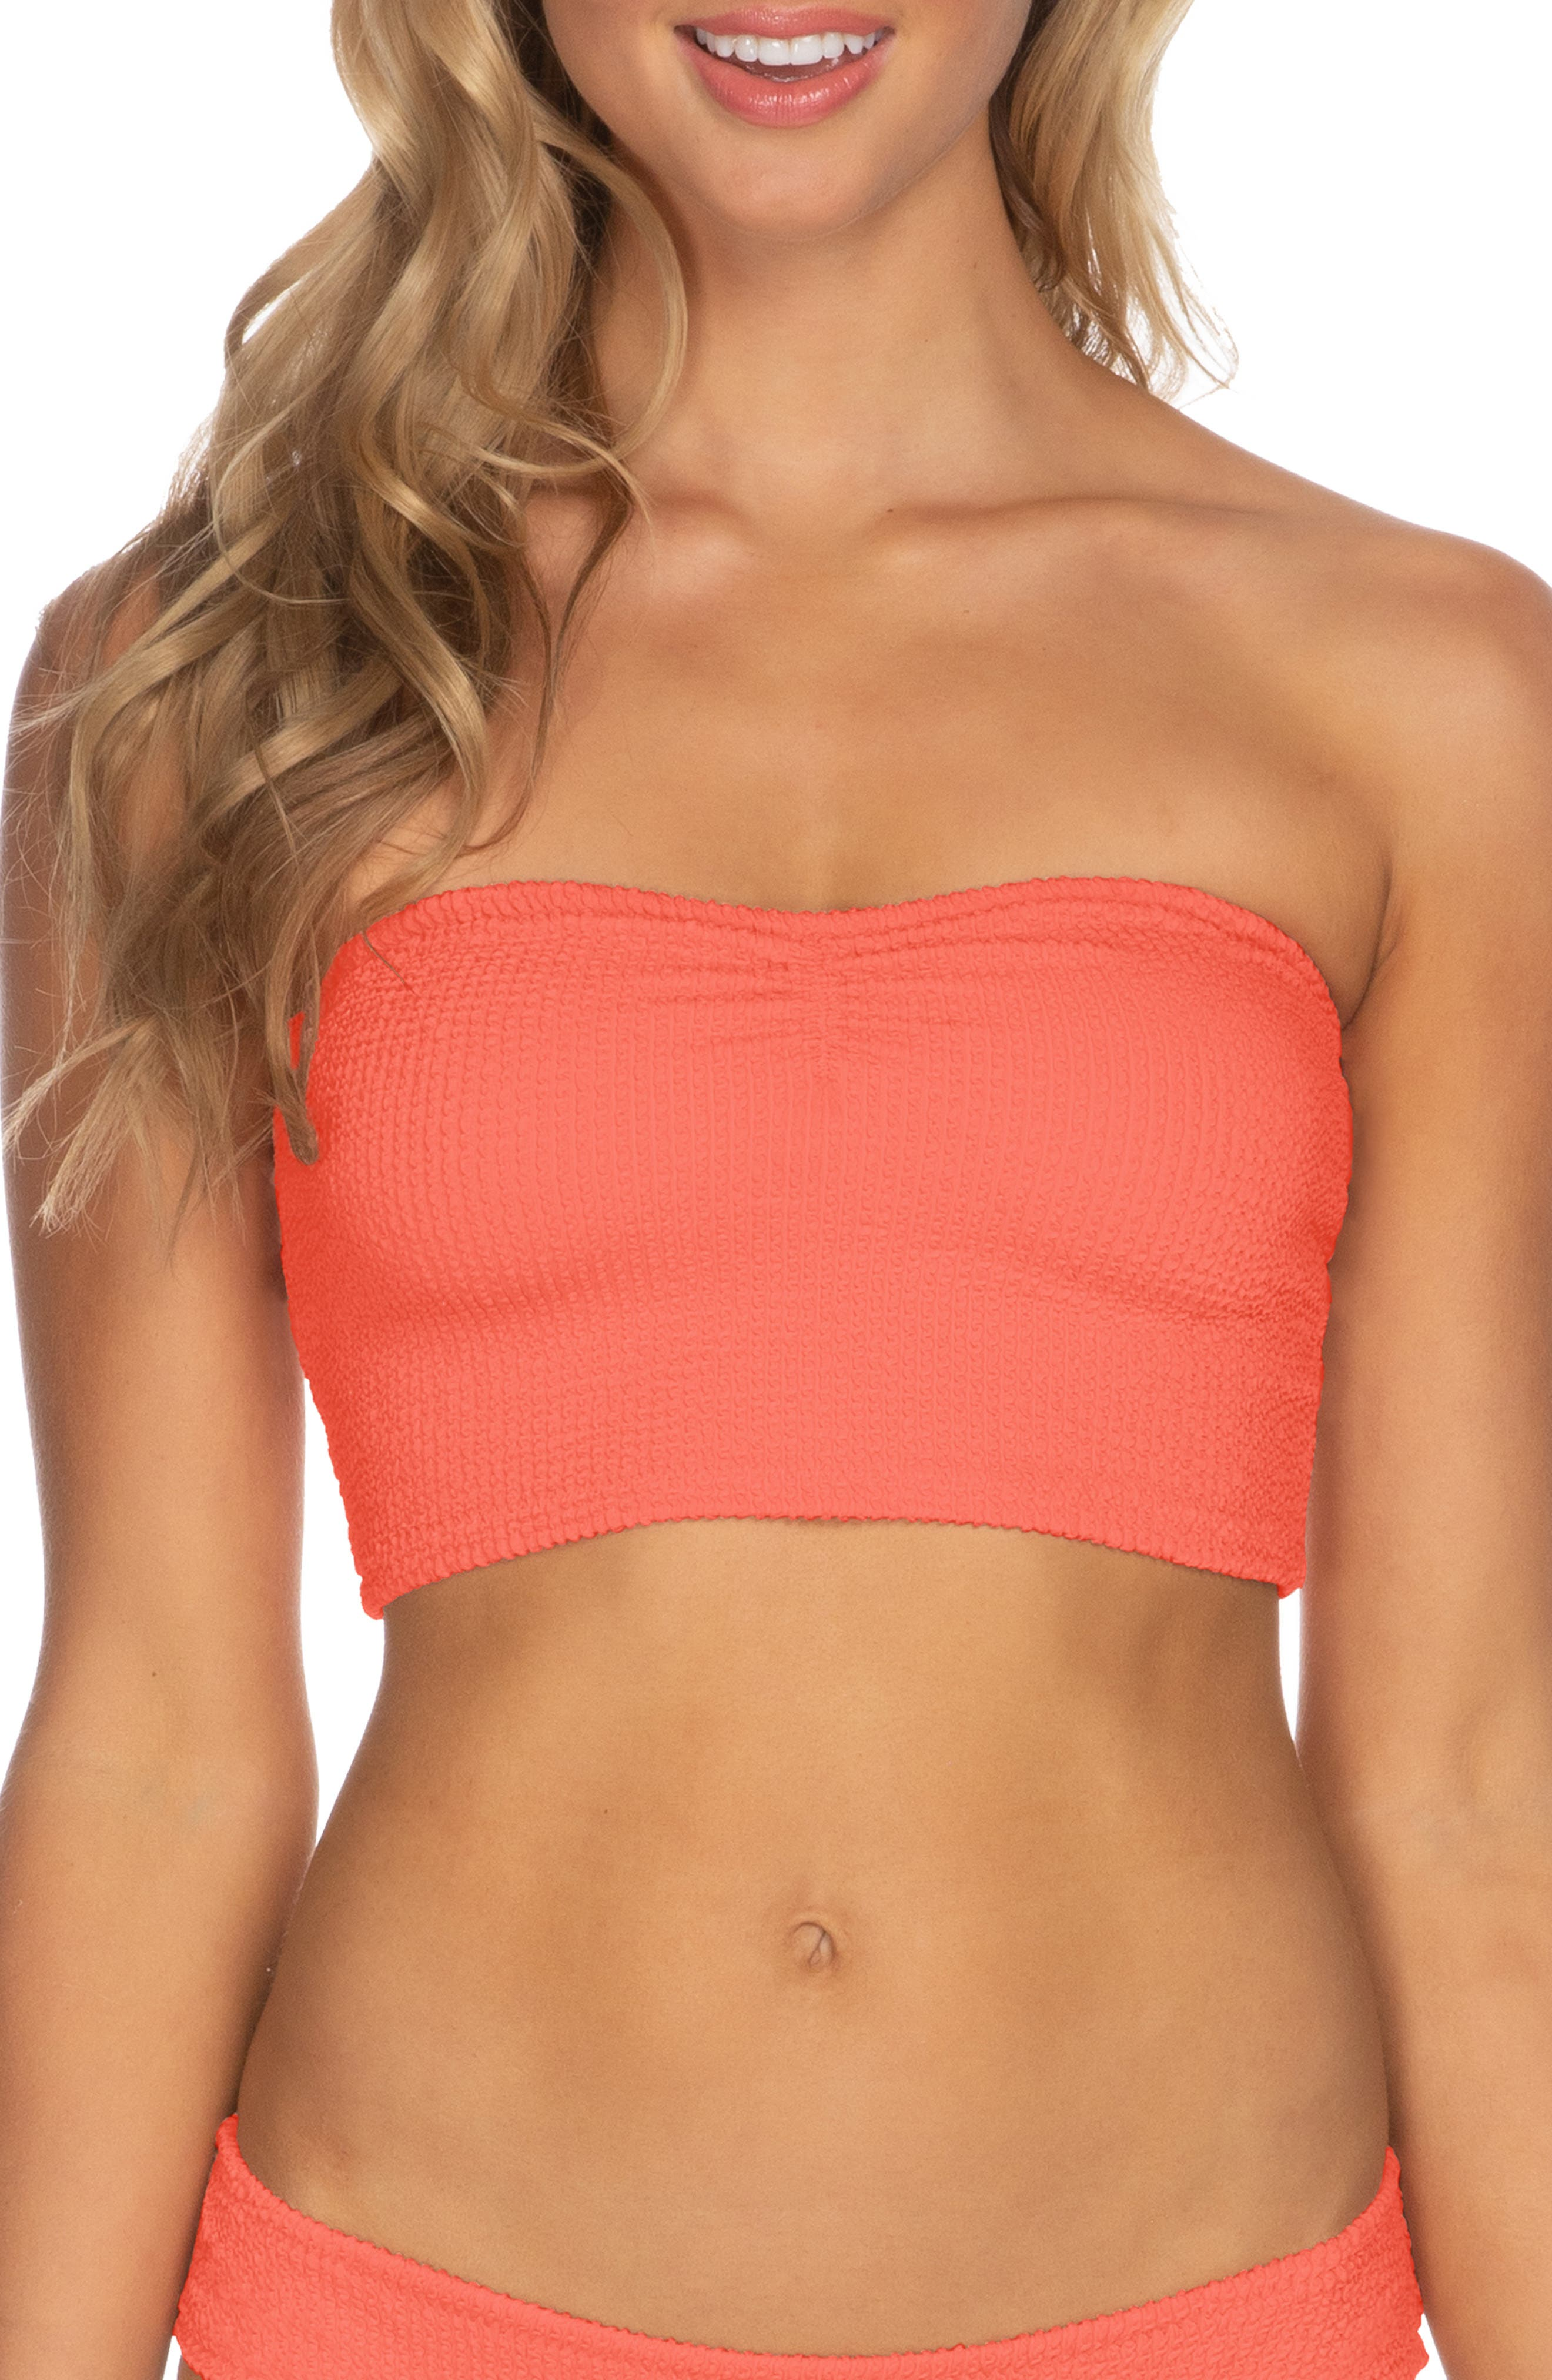 Isabella Rose Pucker Up Seersucker Bikini Tube Top, Coral